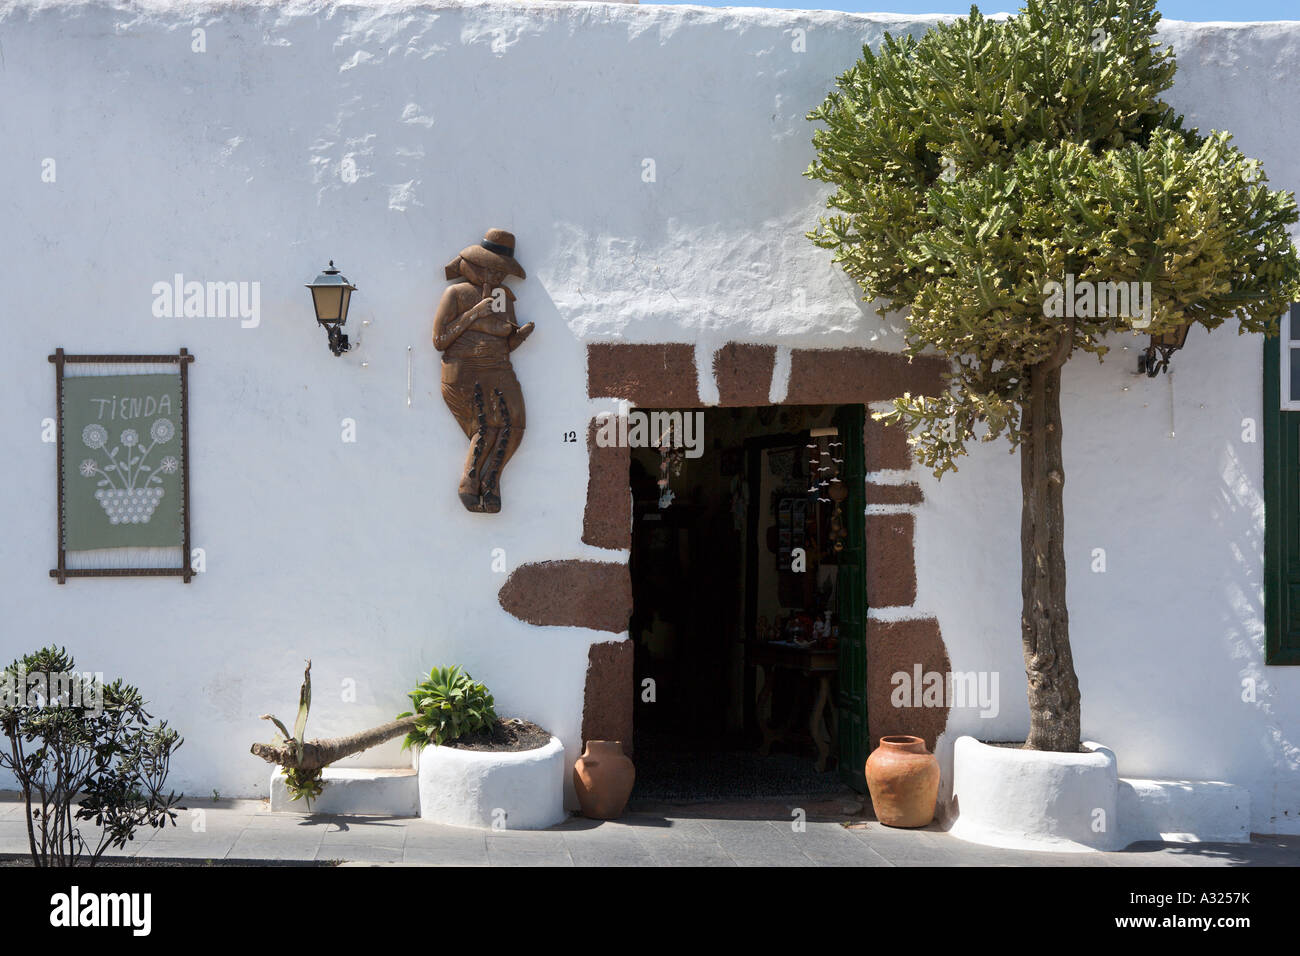 Entrance to a local shop in Teguise, Lanzarote, Canary Islands, Spain - Stock Image